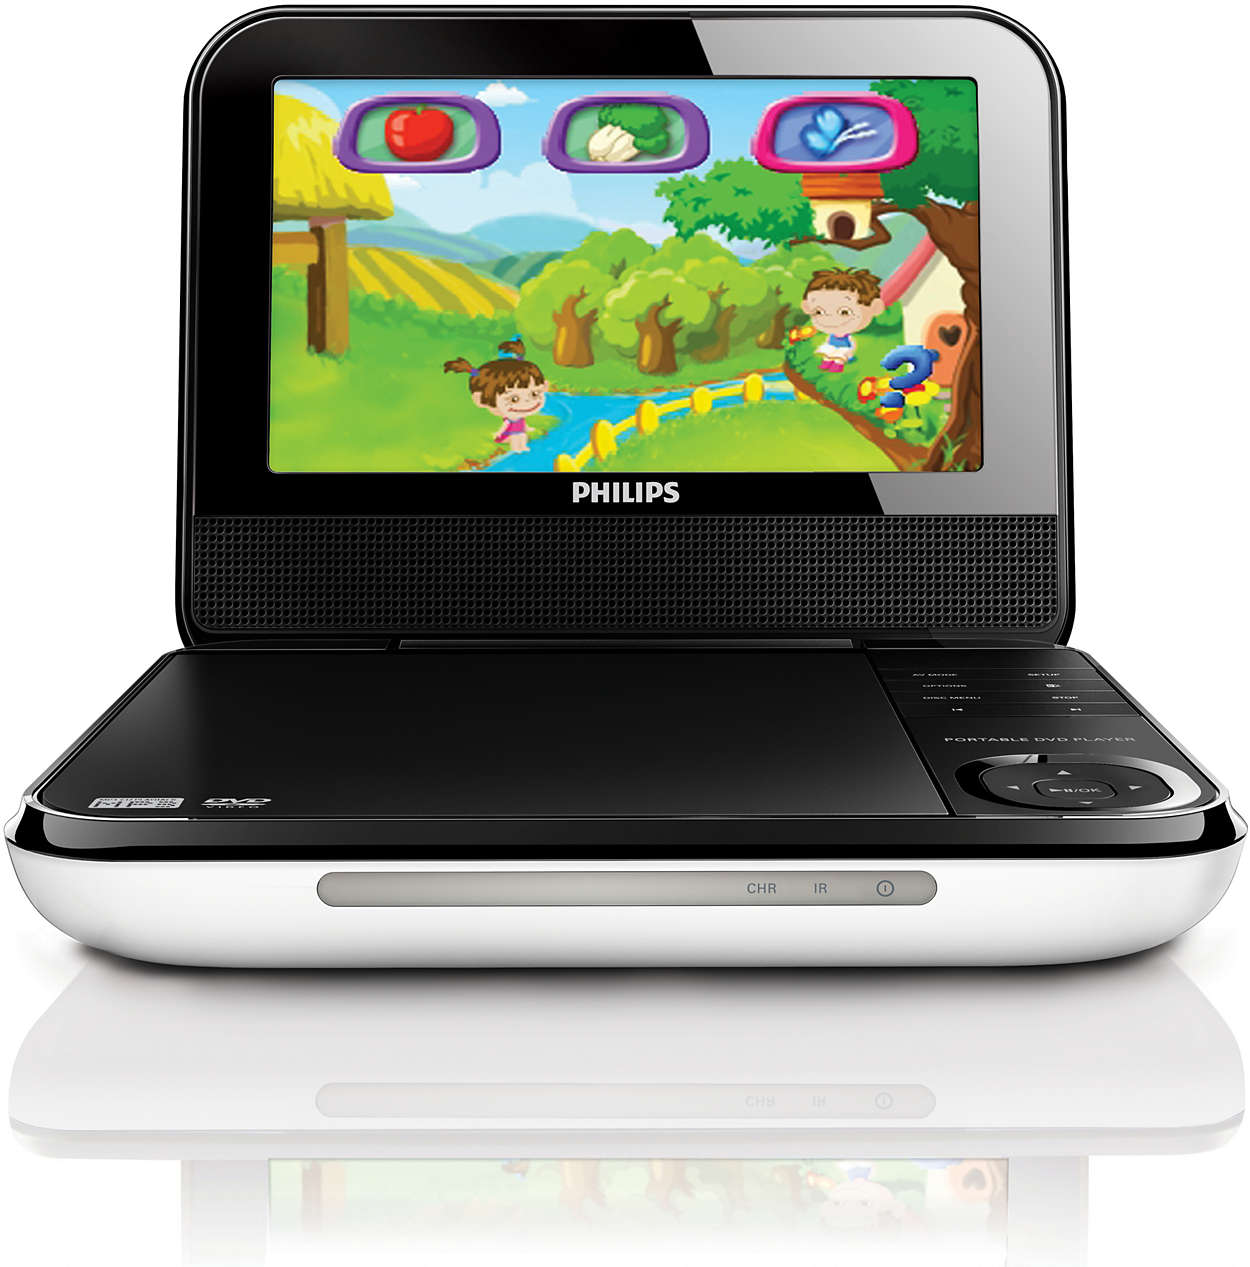 portable dvd player pd703 37 philips. Black Bedroom Furniture Sets. Home Design Ideas